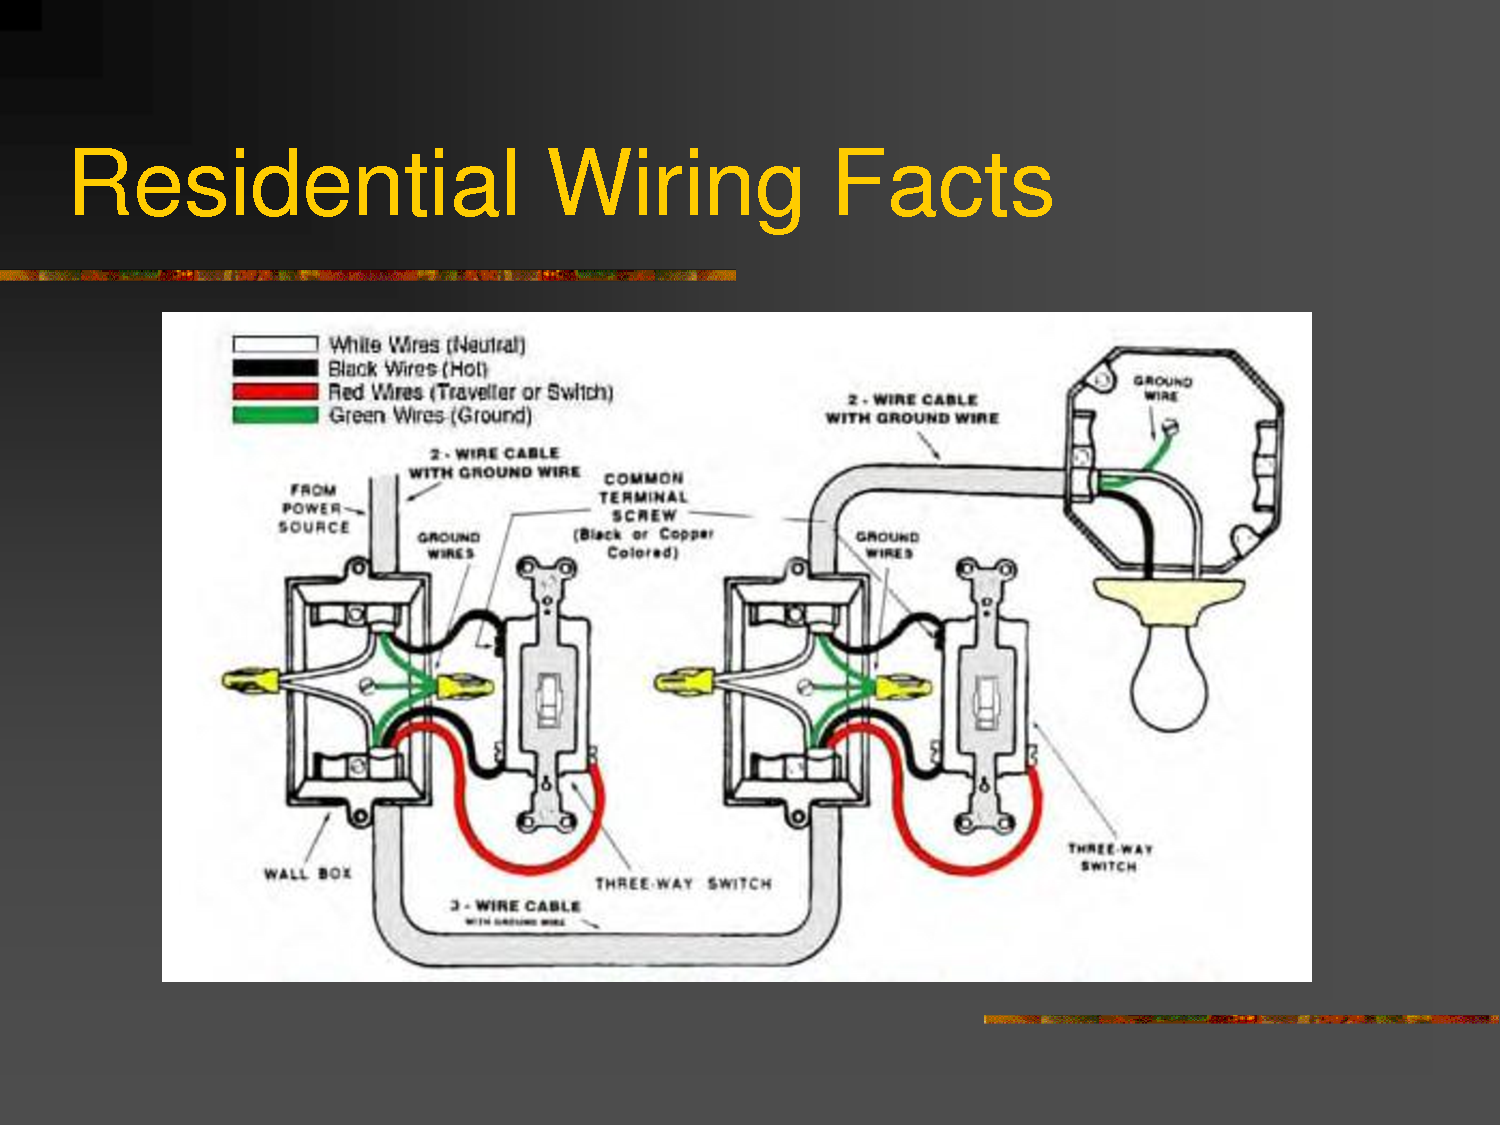 4 Best Images Of Residential Wiring Diagrams House Electrical Gang Diagram